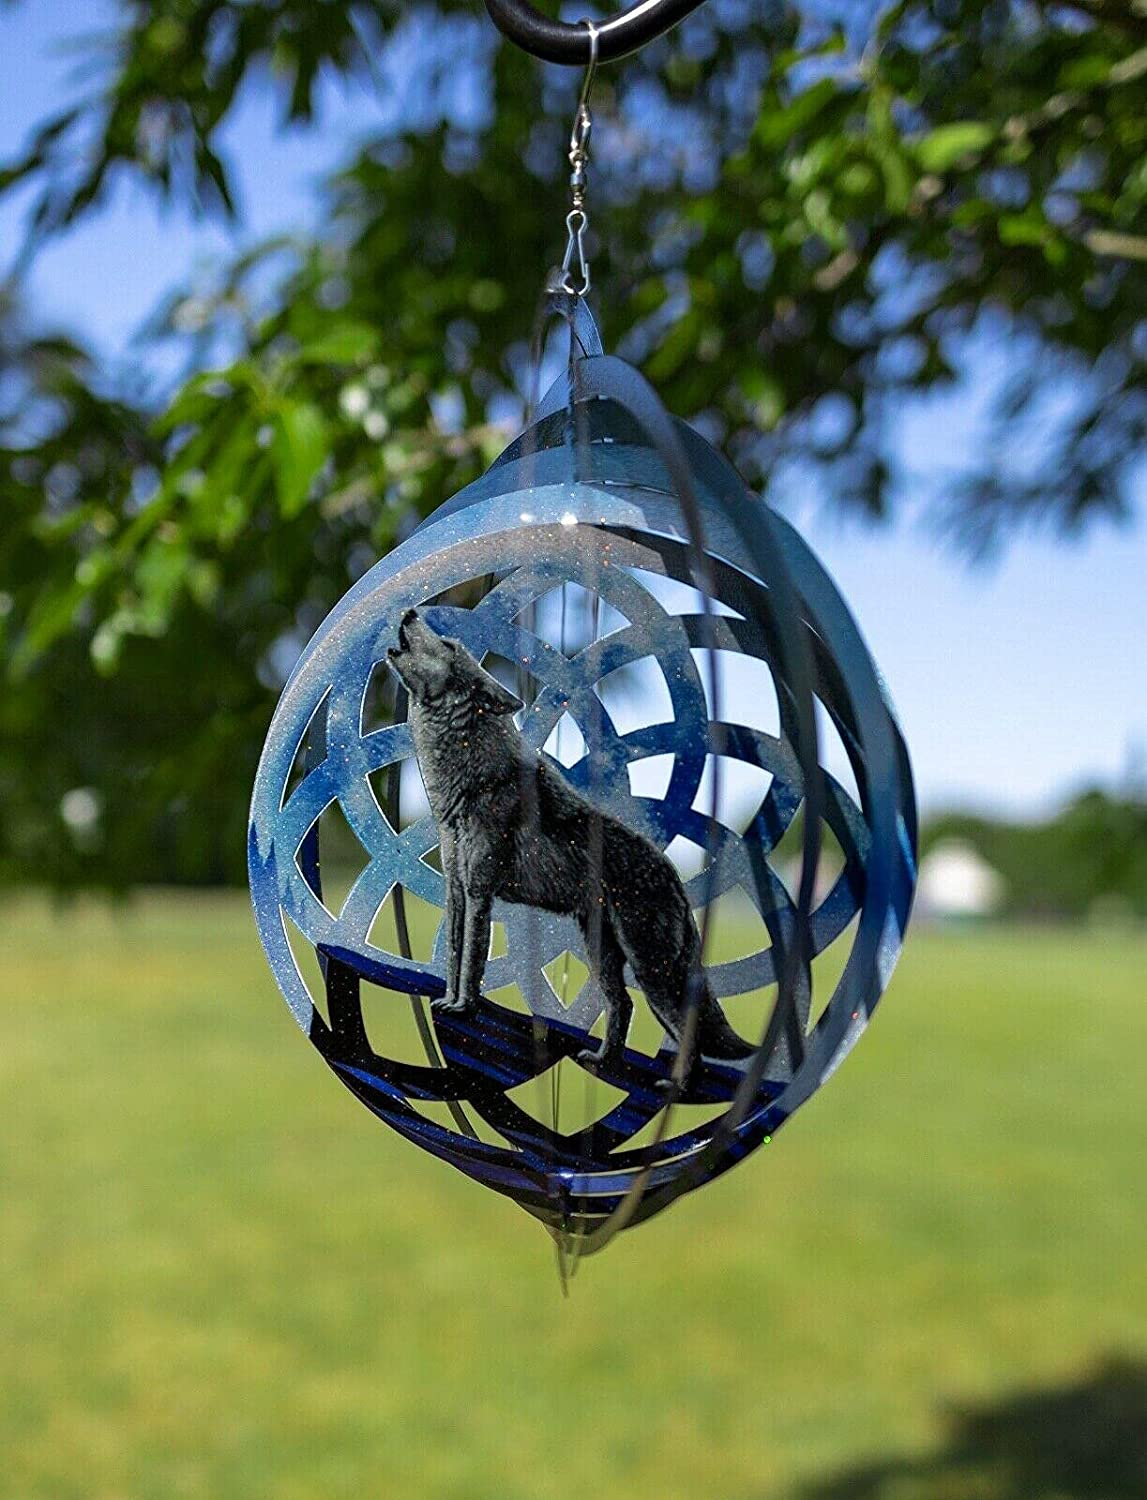 Wolf Dreamcatcher Large special price Kinetic 3D Metal Wind Decor Spi Outdoor Limited time cheap sale Garden